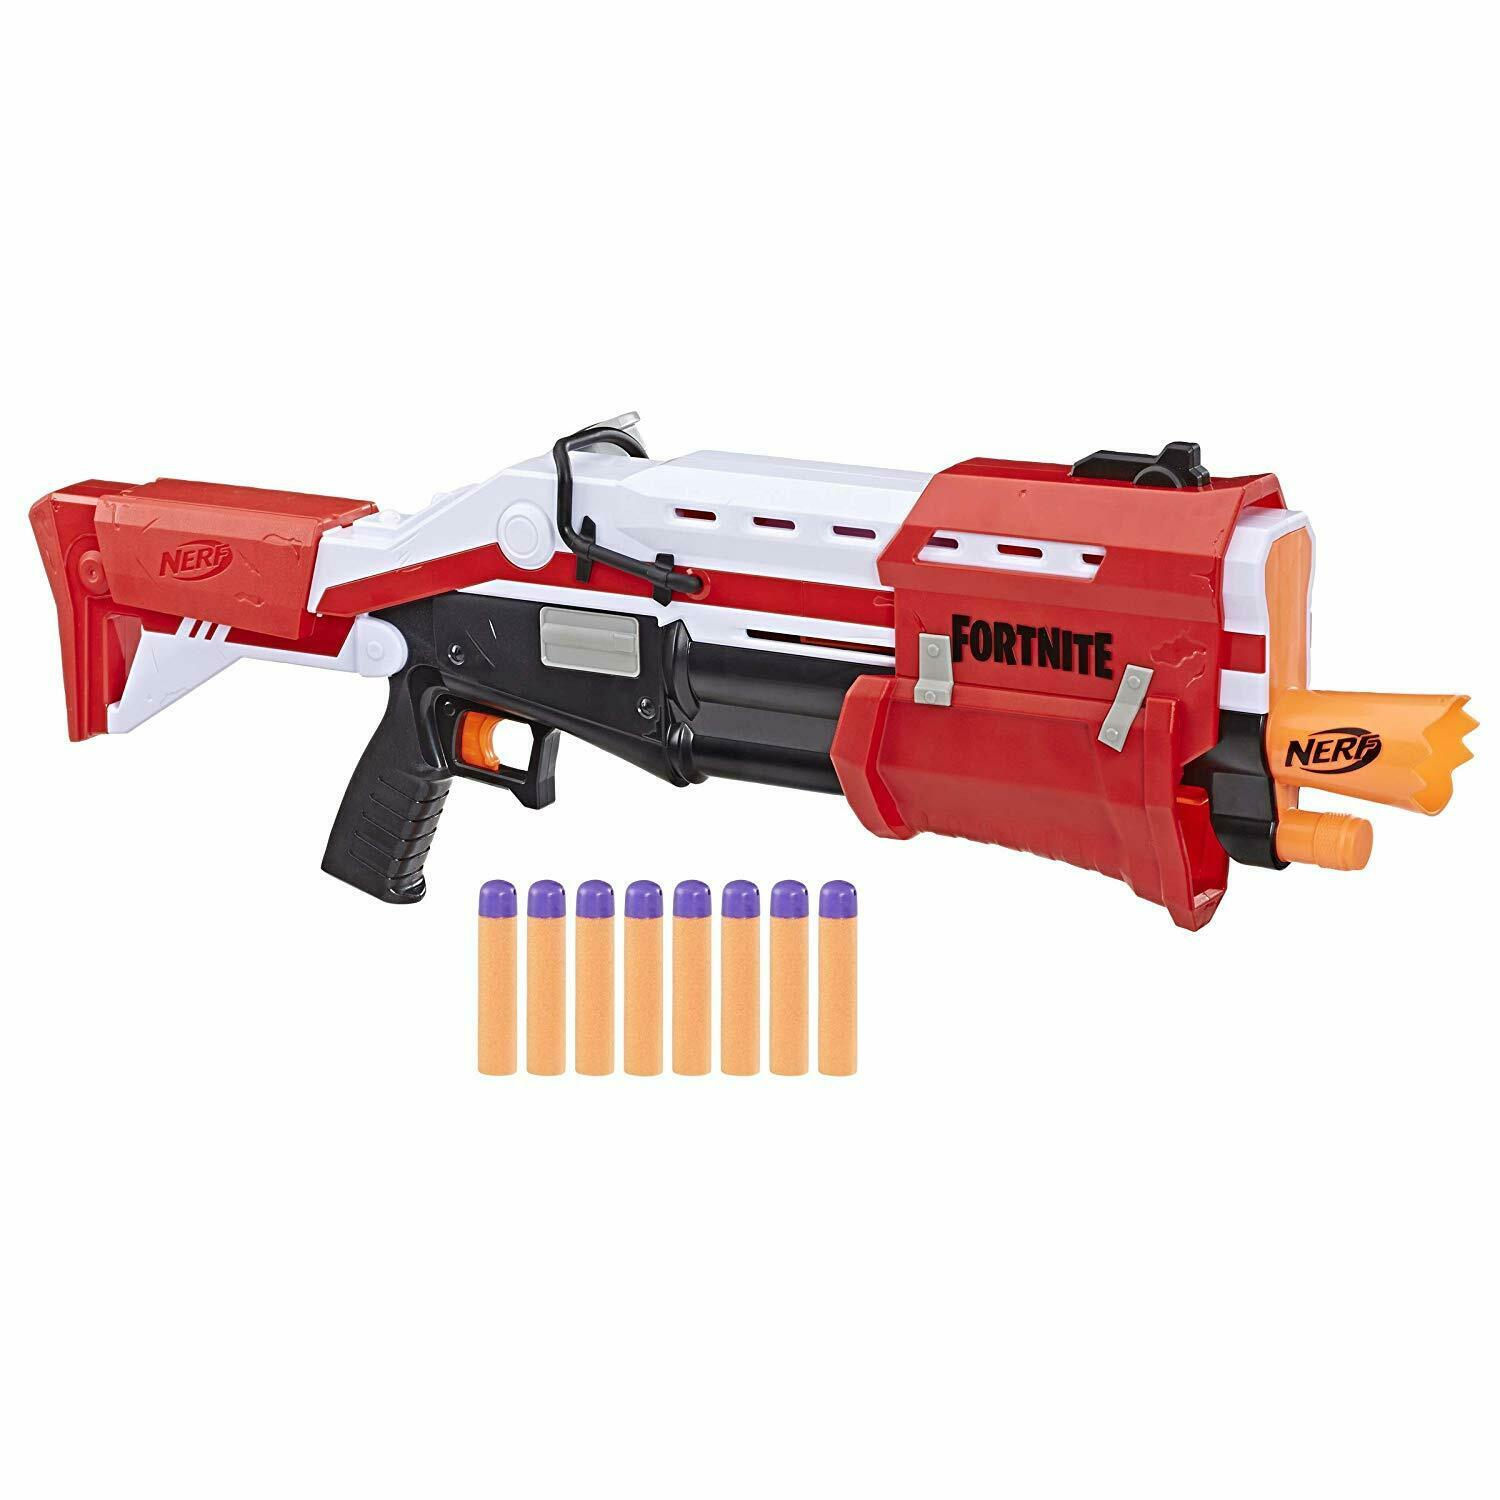 Nerf Guns For Girls Nerf Ts-1 Blaster Nerf Guns For Boys For